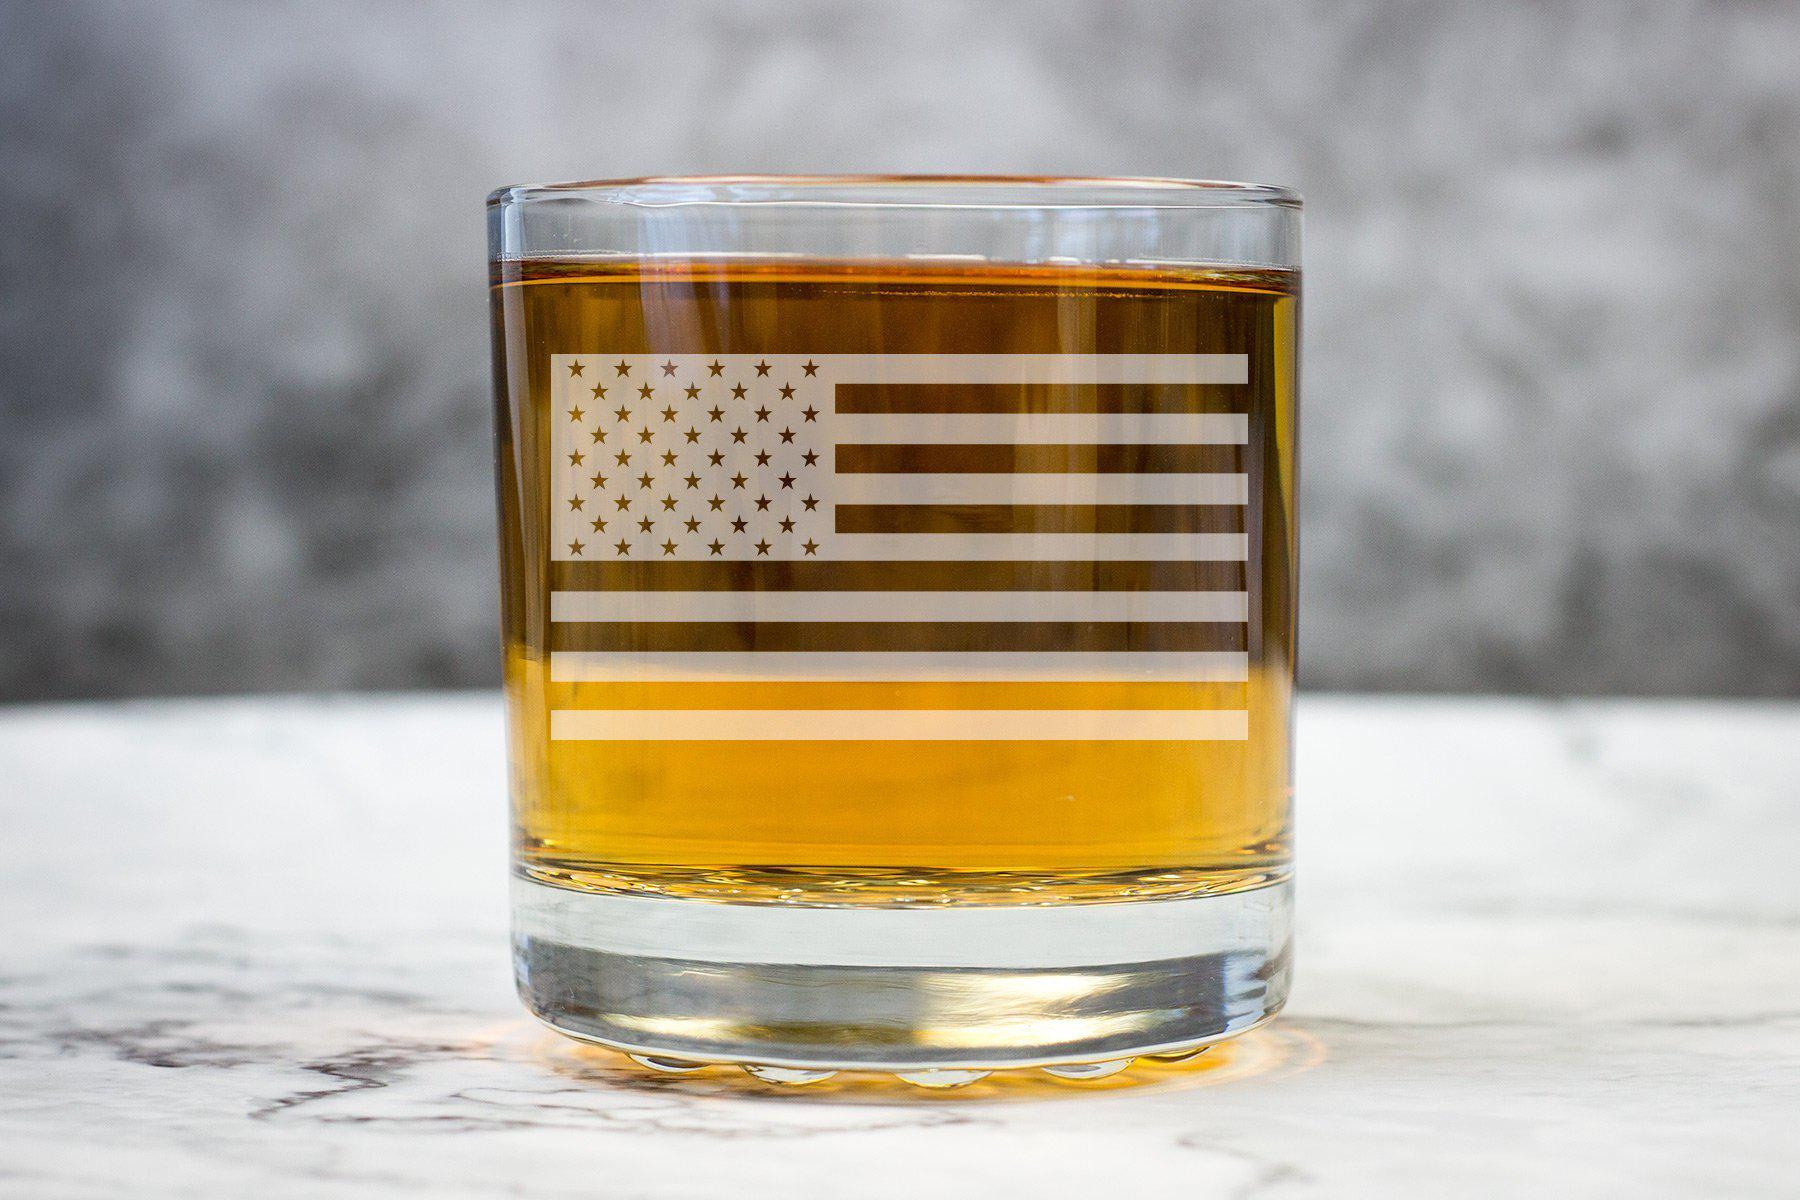 Patriotic American Flag Glass-Whiskey Glasses + Wine-Maddie & Co.